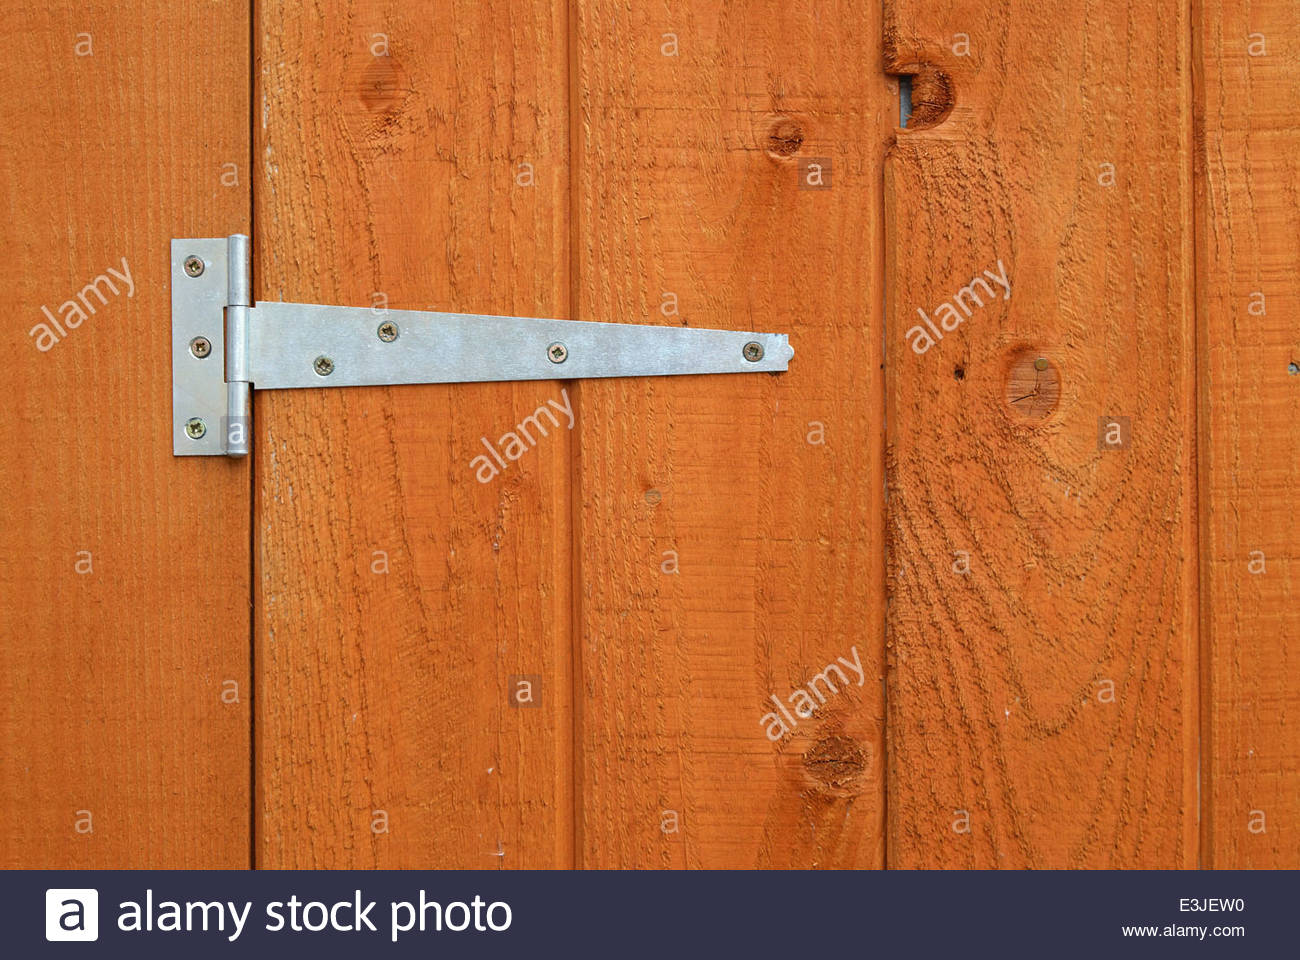 Metal hinge on a wooden shed door - Stock Image